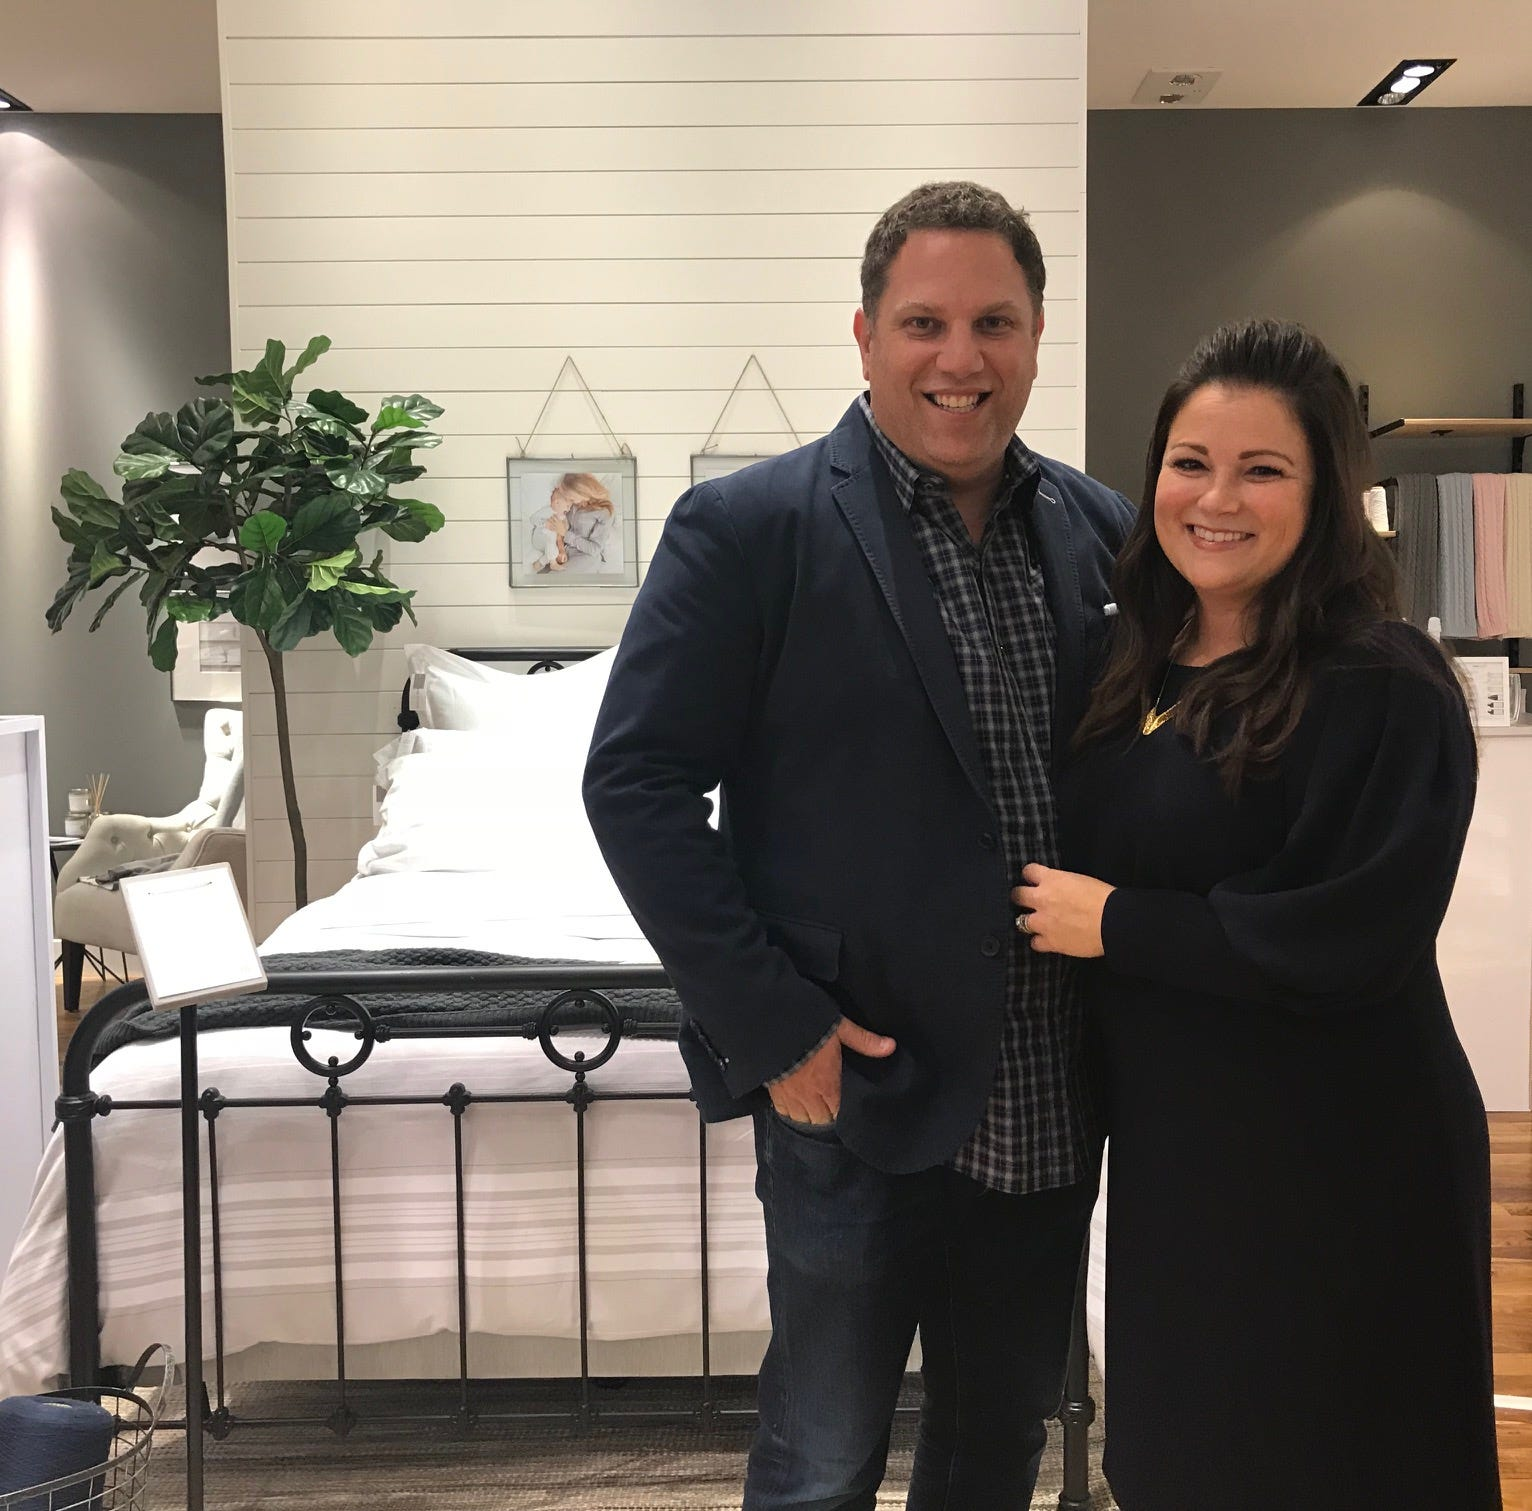 Jersey-based Boll & Branch opens first brick-and-mortar store at Short Hills mall